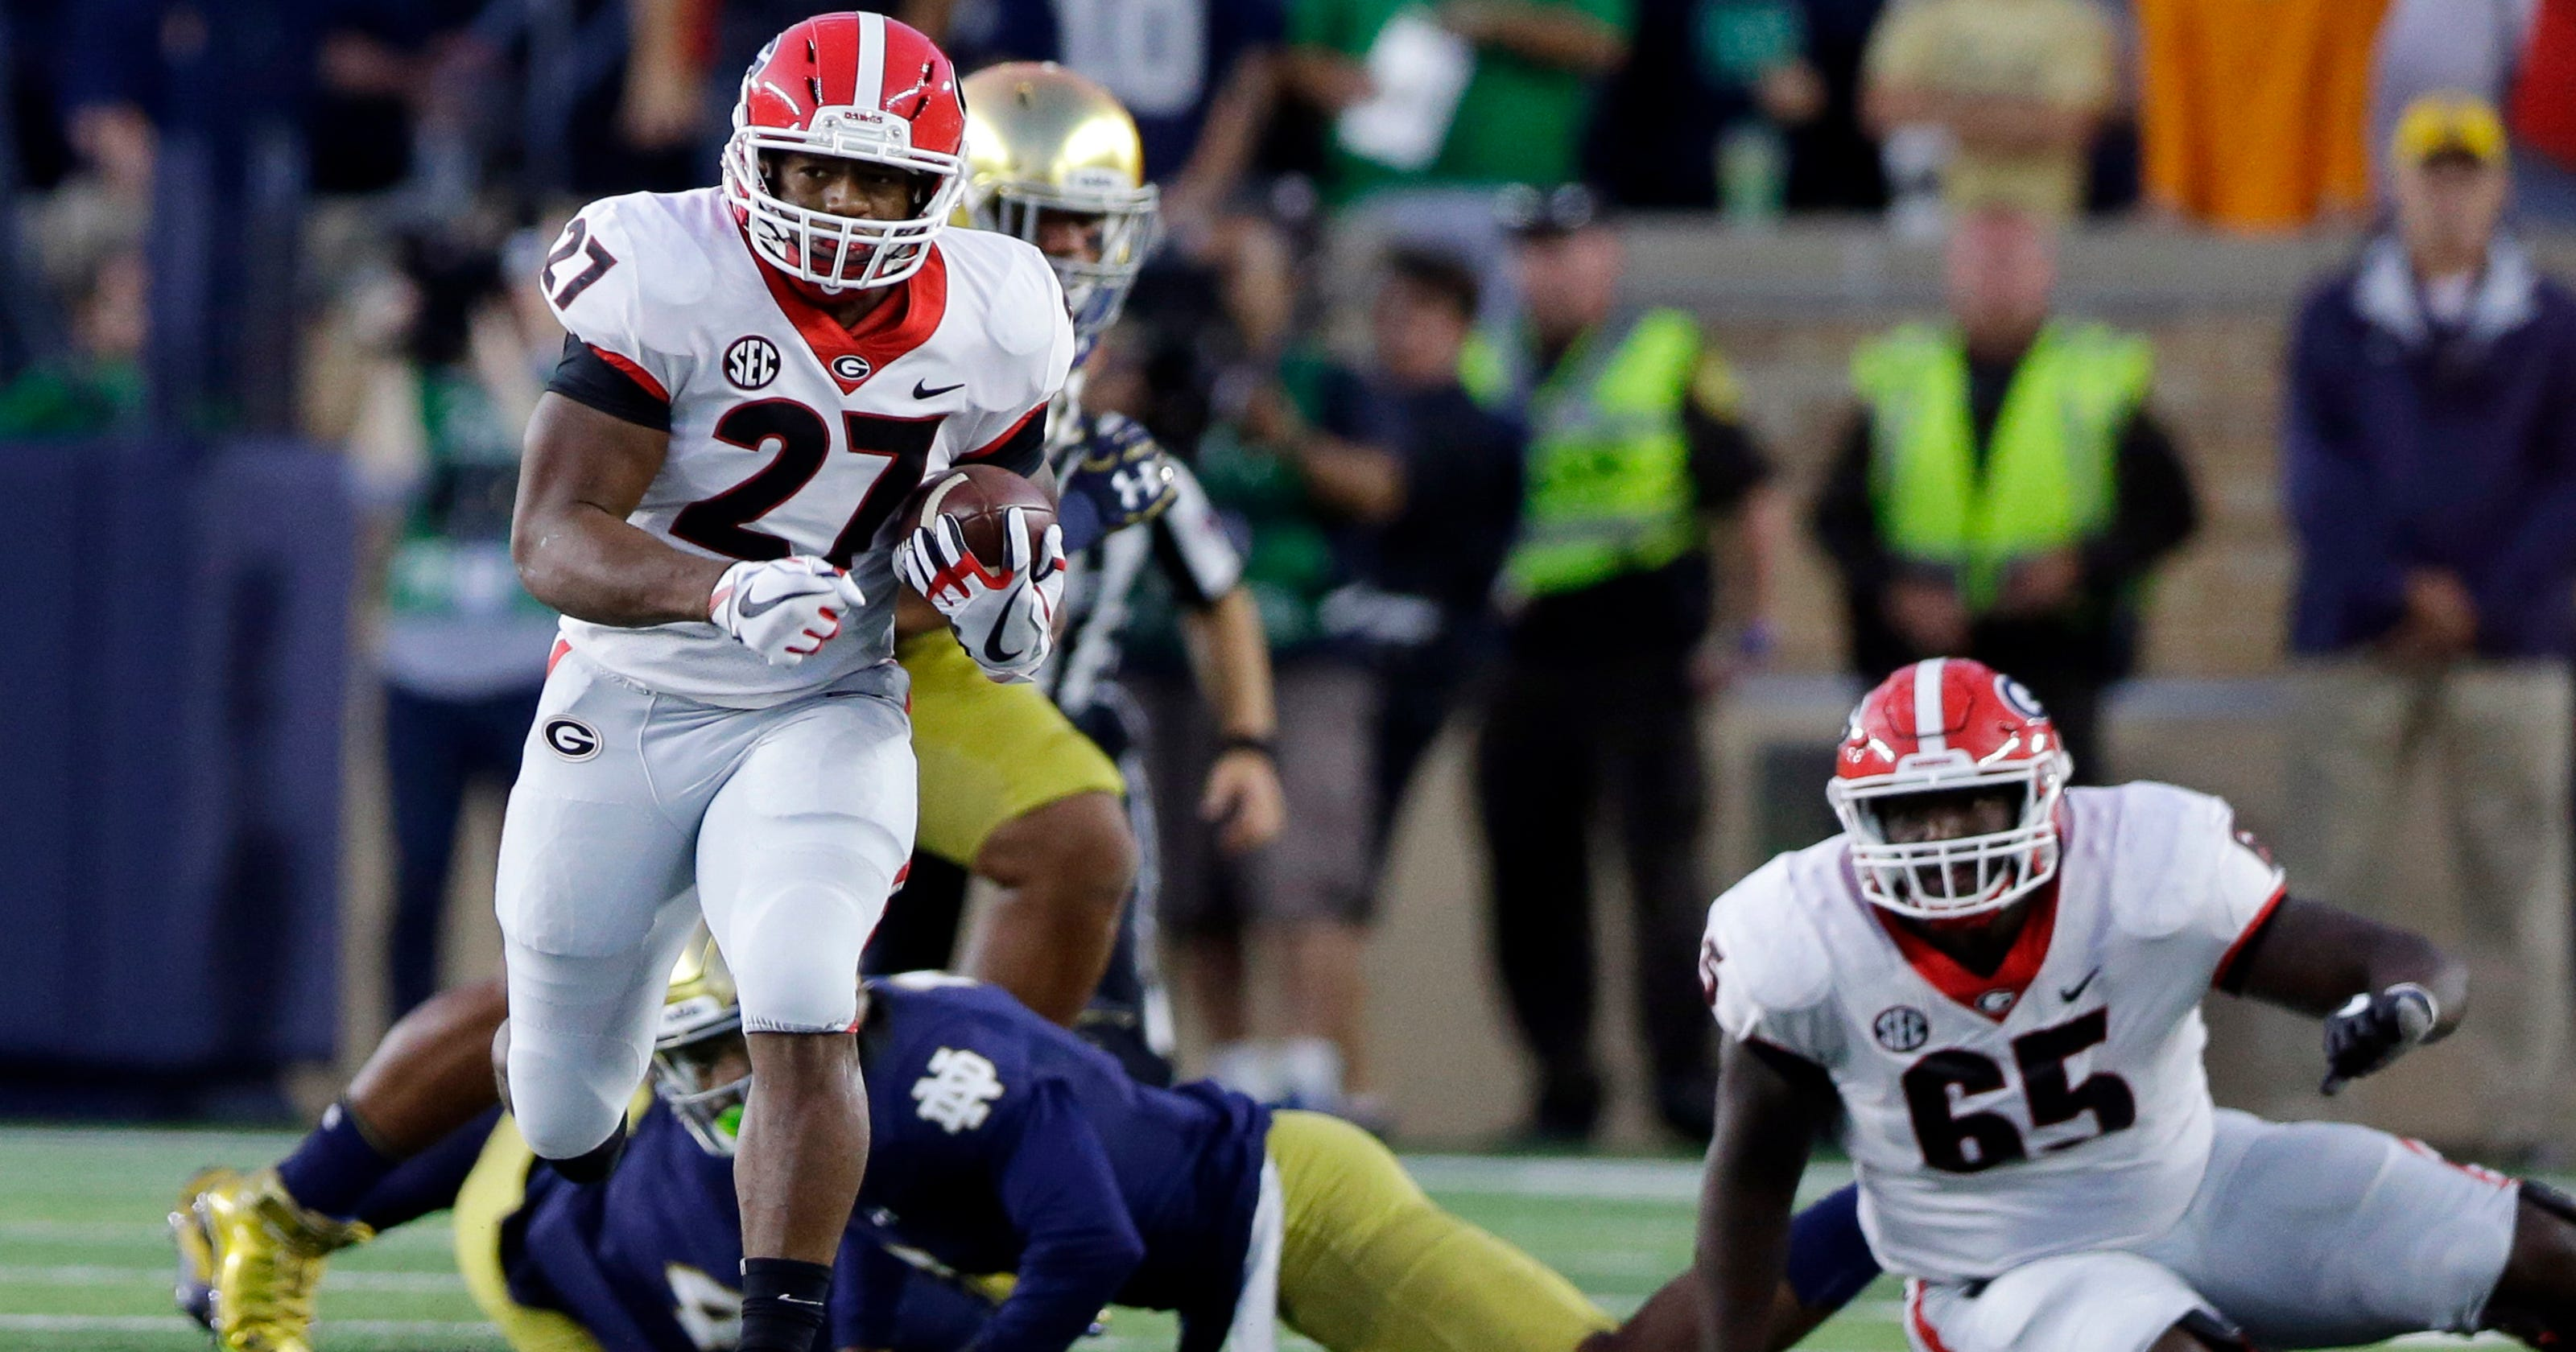 Georgia s Nick Chubb is college football s most unfairly overlooked  superstar 2f645ba9f